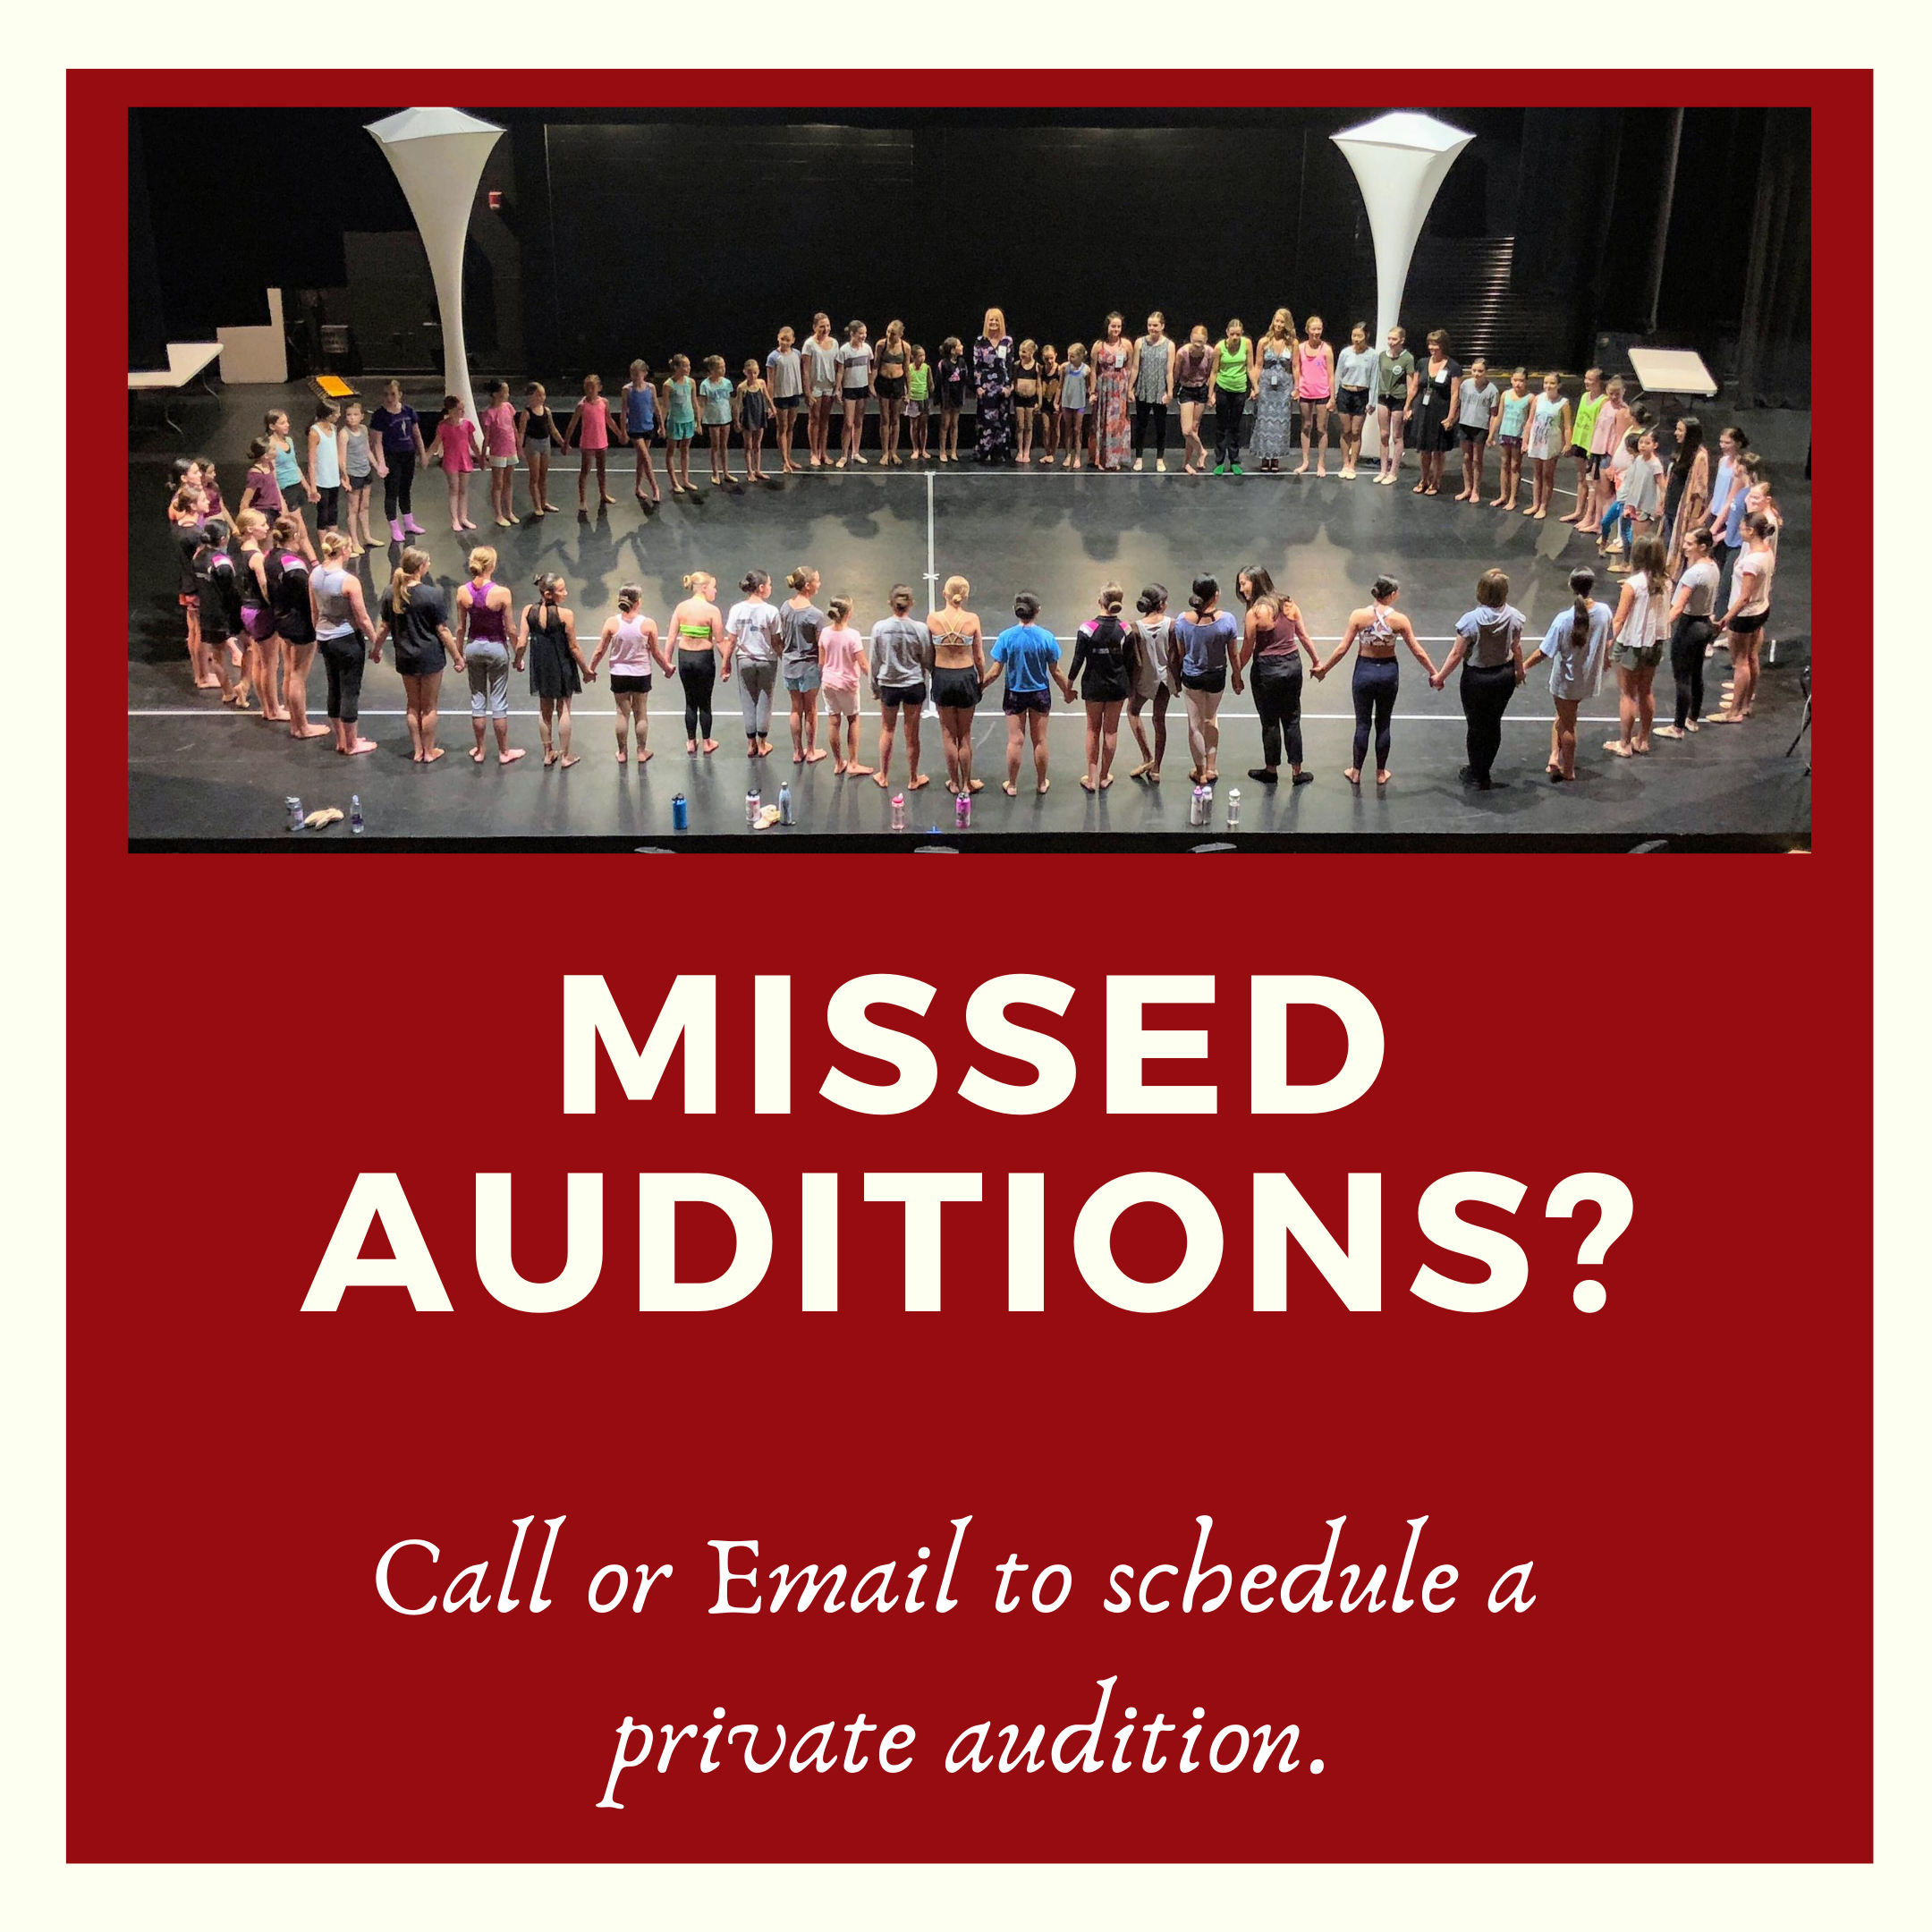 Missed auditions_